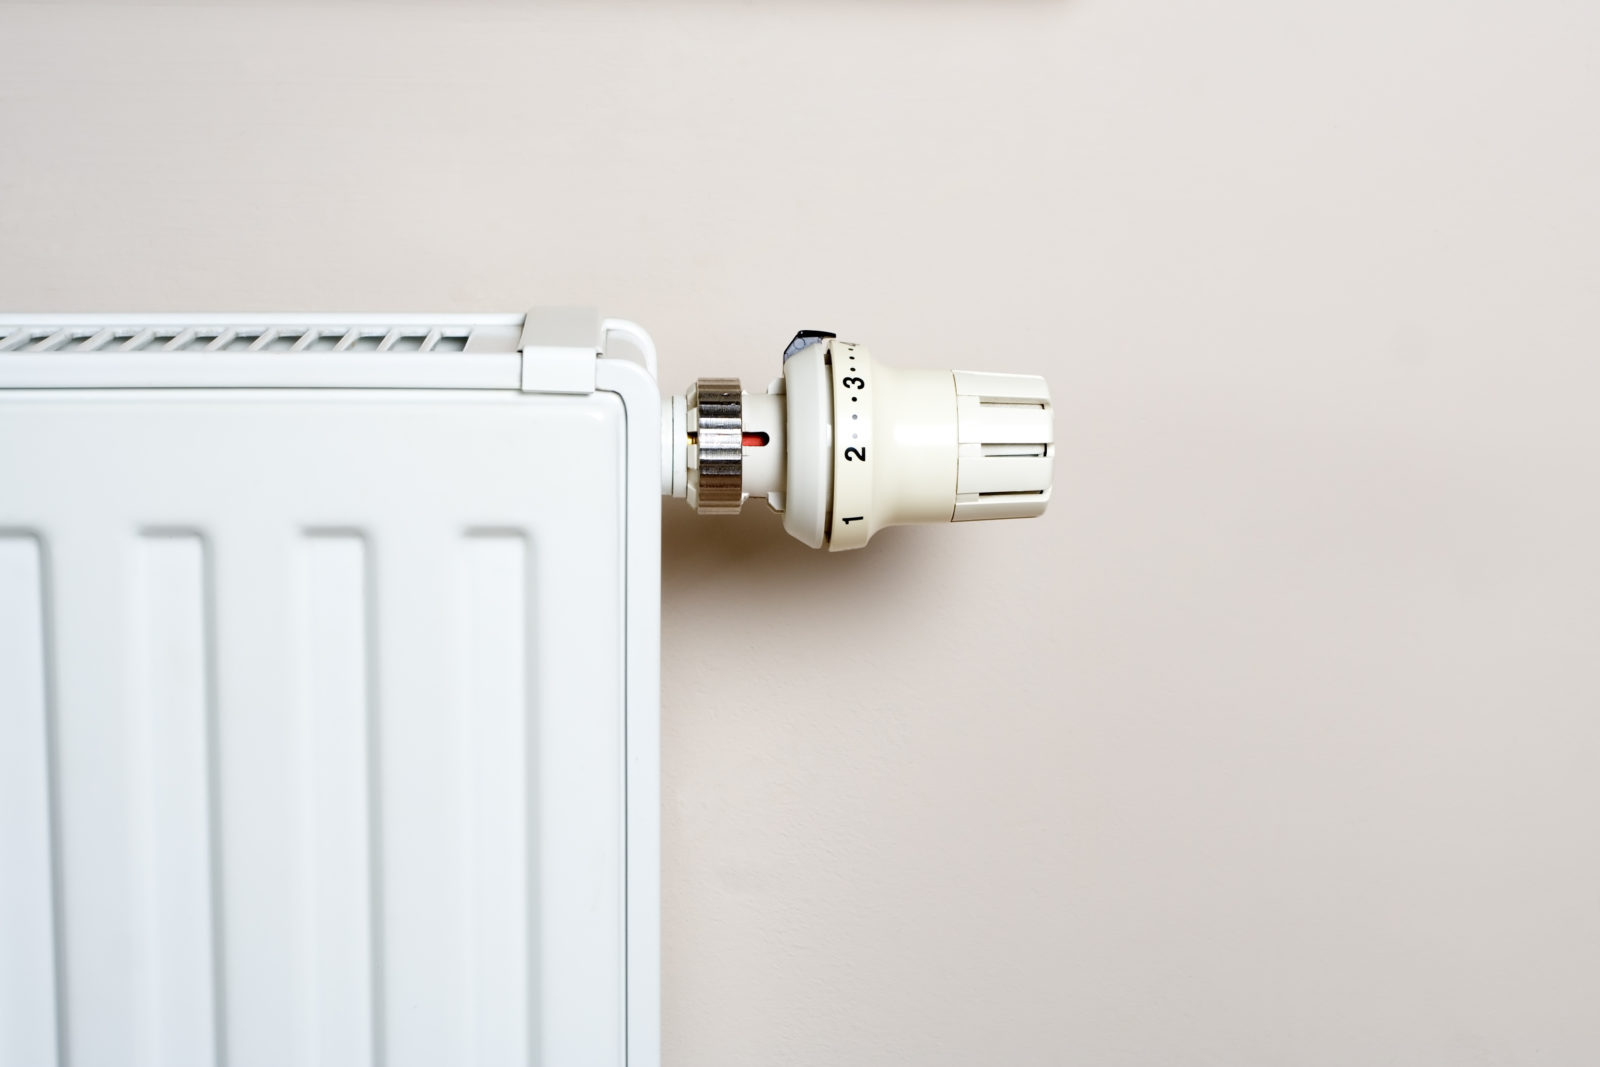 Radiator with thermostat on wall